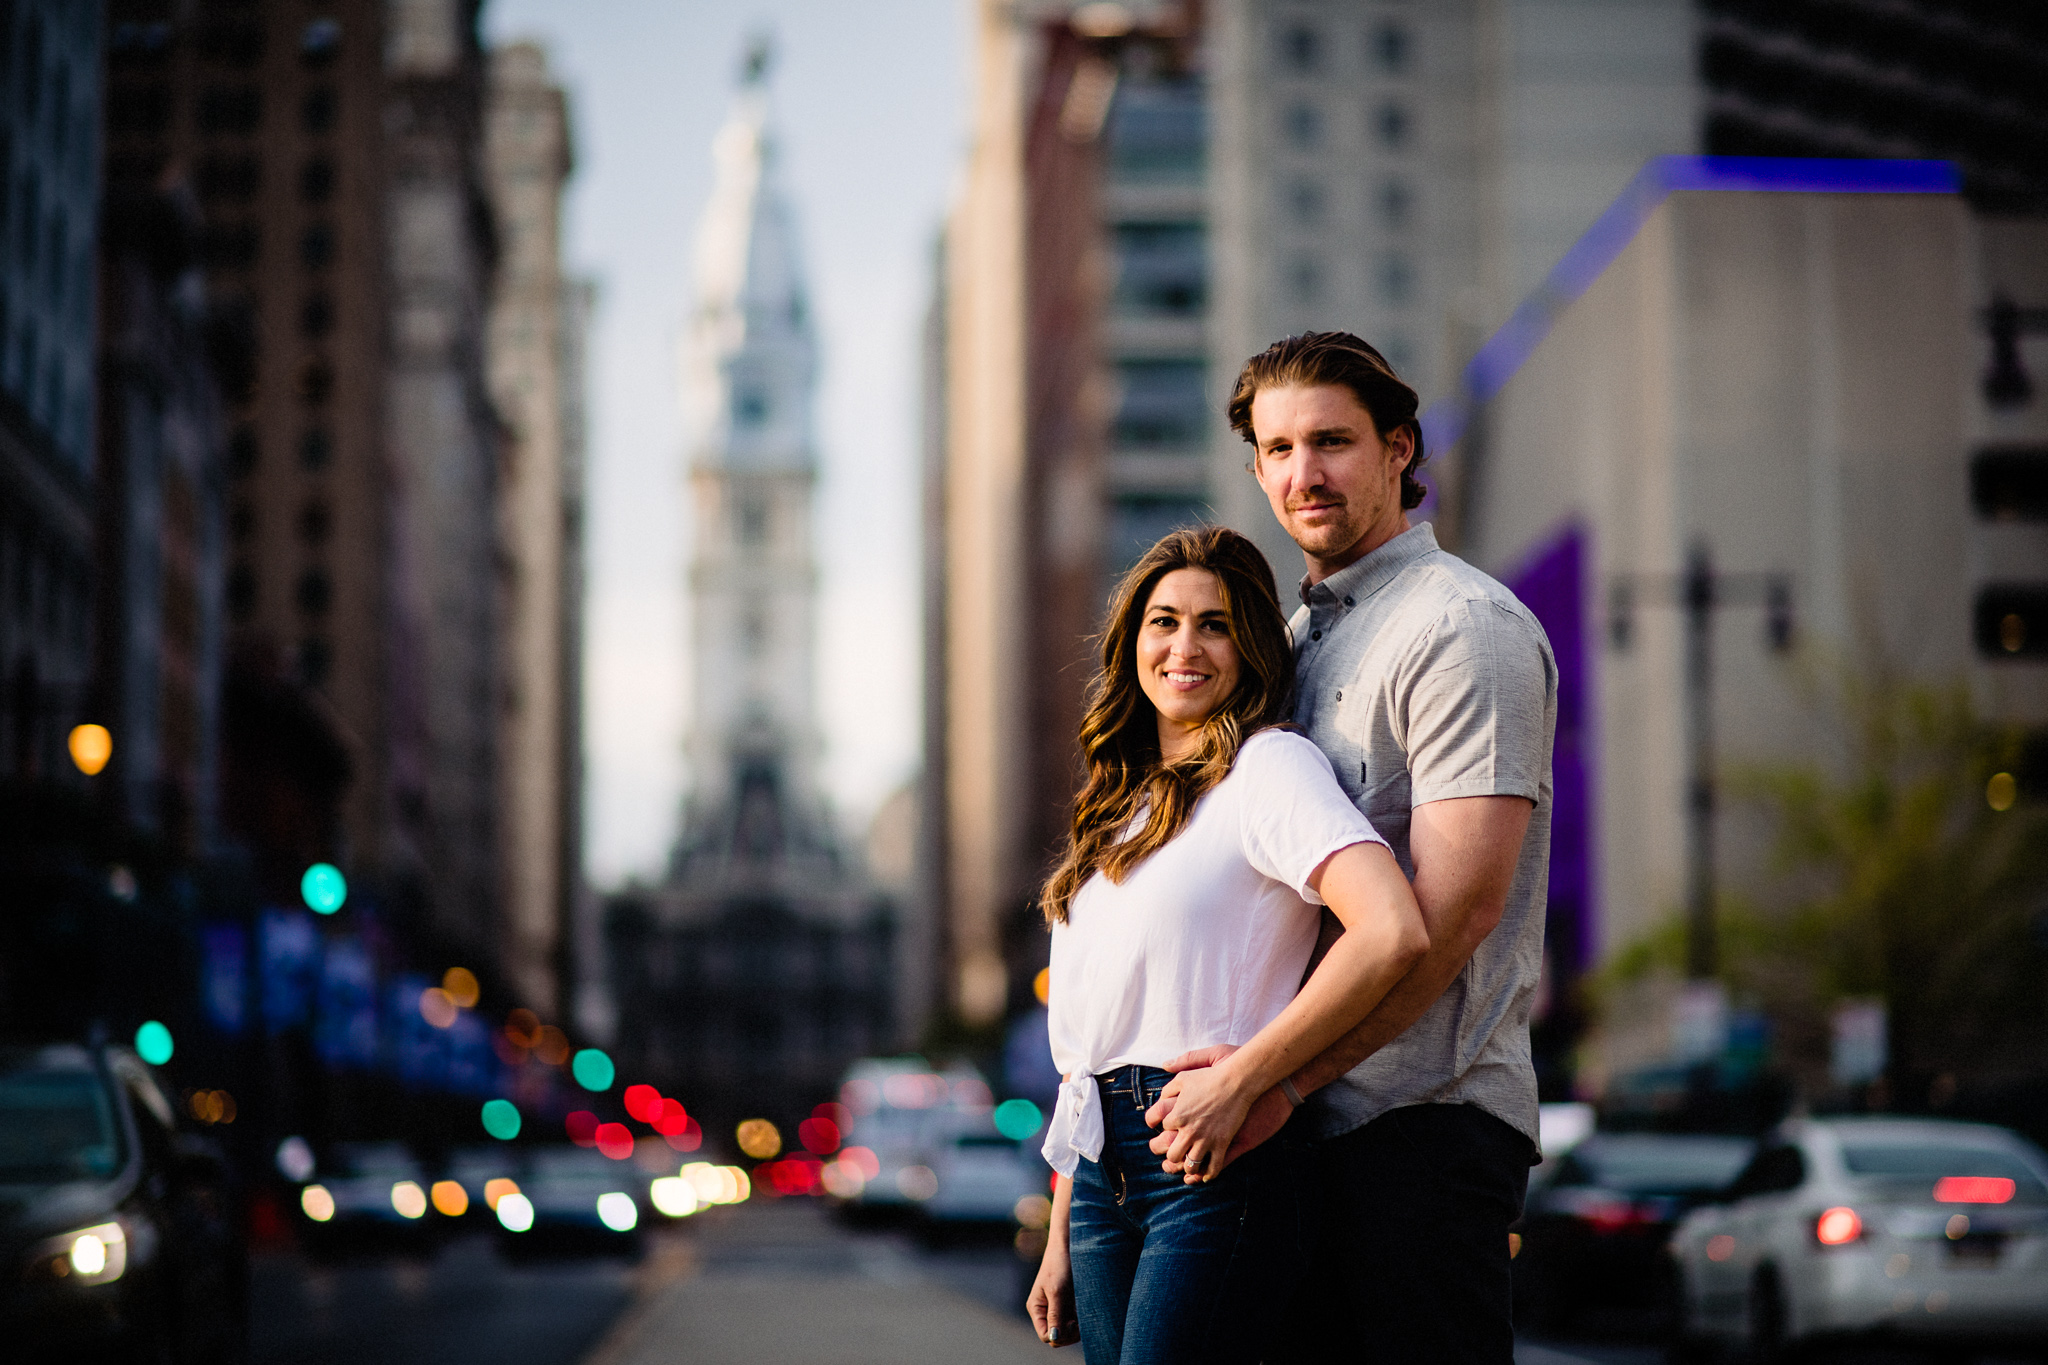 Philadelphia Old City Broad Street Engagement Photography-2019 -04-22-18-55-852_7937-Edit.jpg